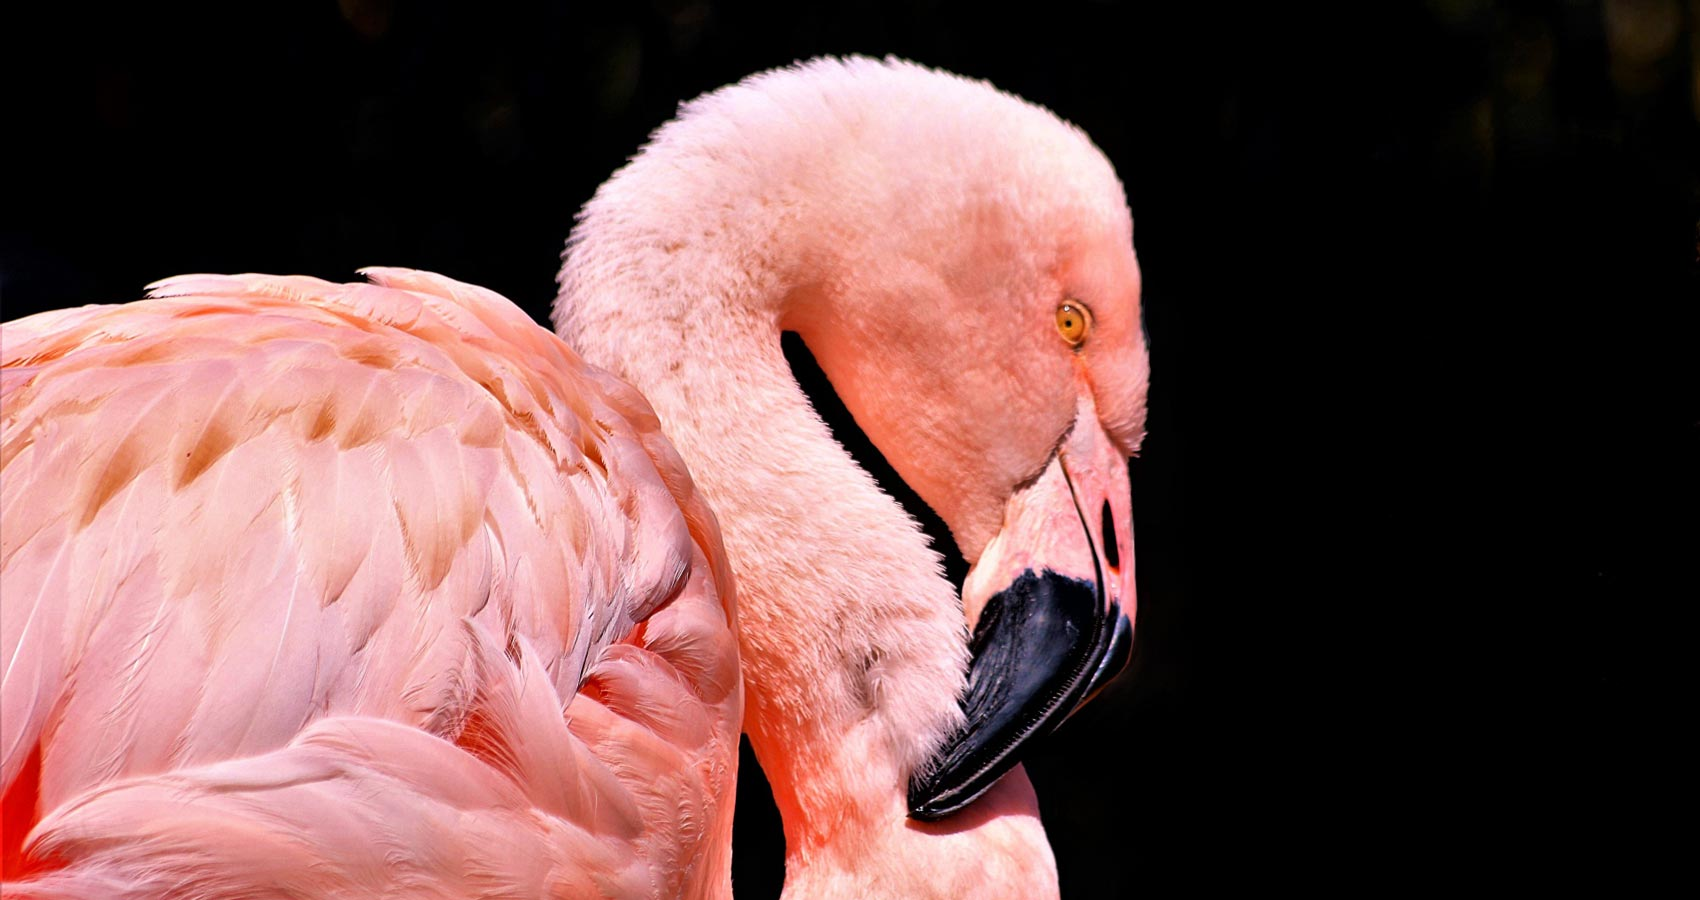 Even A Plain Chicken Could Become A Pink Flamingo One Day, a short story written by Valda Taurus at Spillwords.com